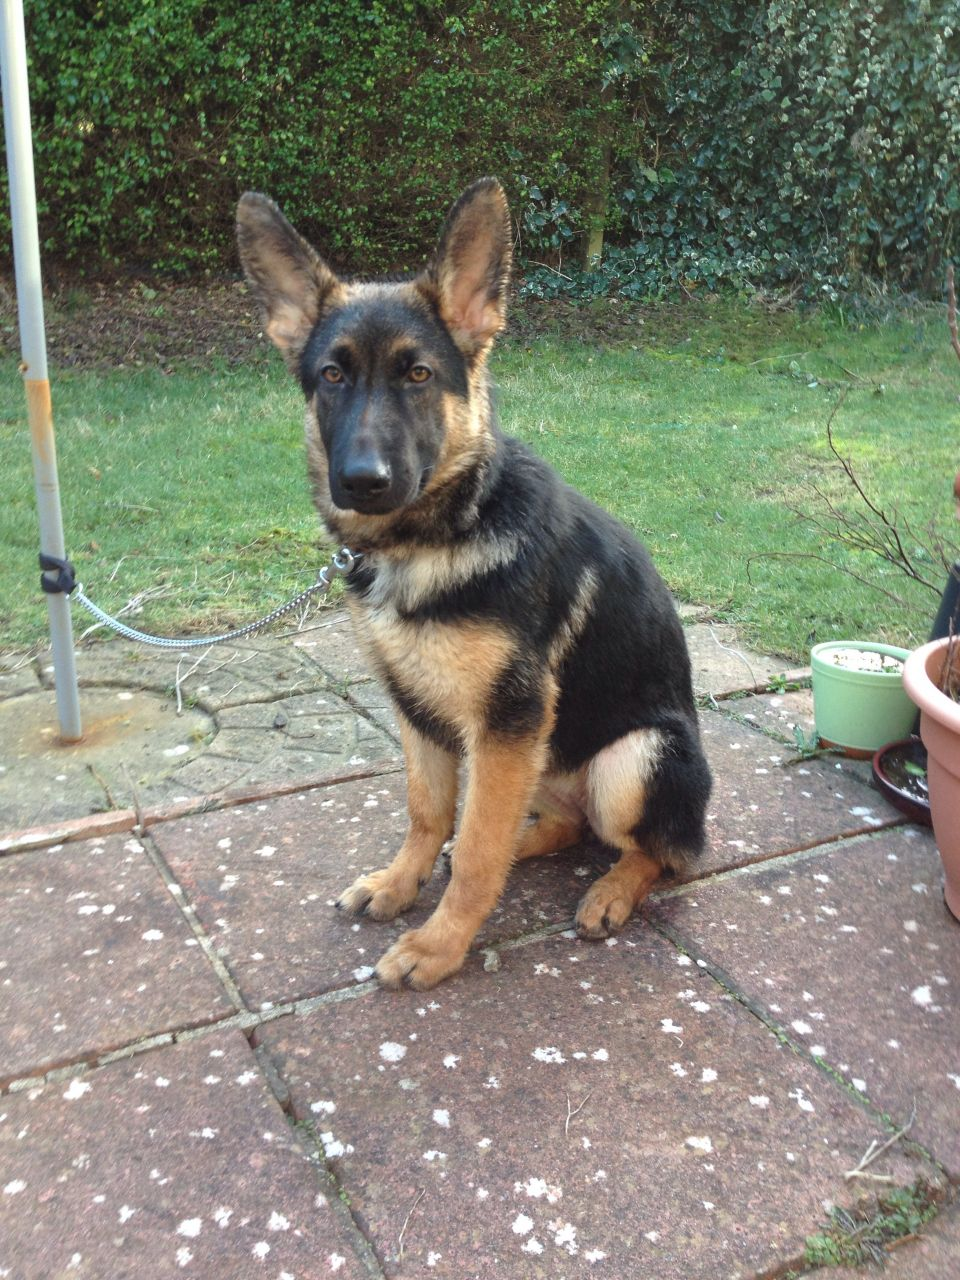 5 month old german shepherd puppy pictures 1001doggy 5 month old german shepherd puppy pictures image and description nvjuhfo Choice Image